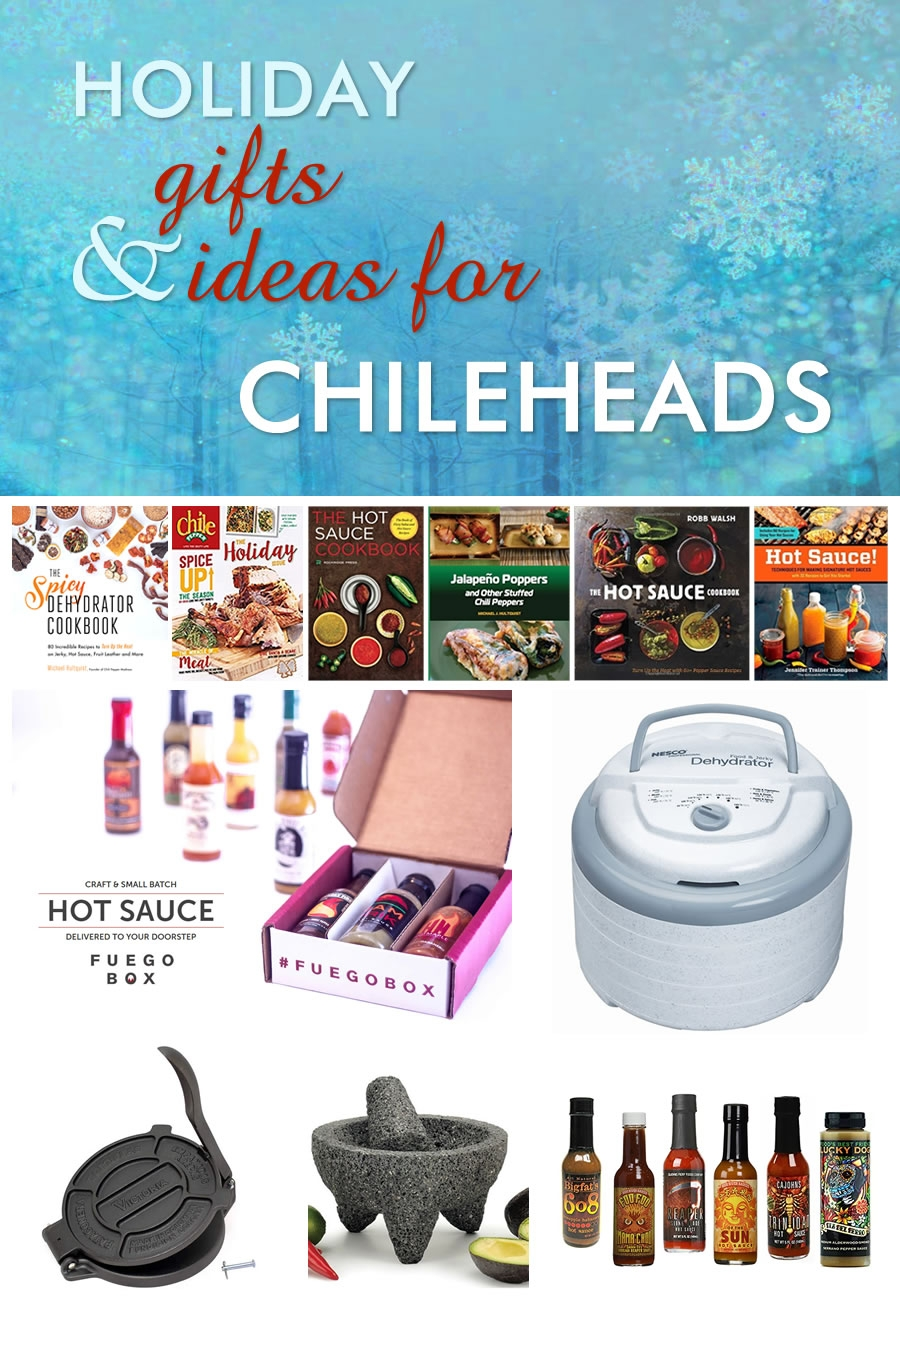 Spicy Gift Ideas for Chileheads